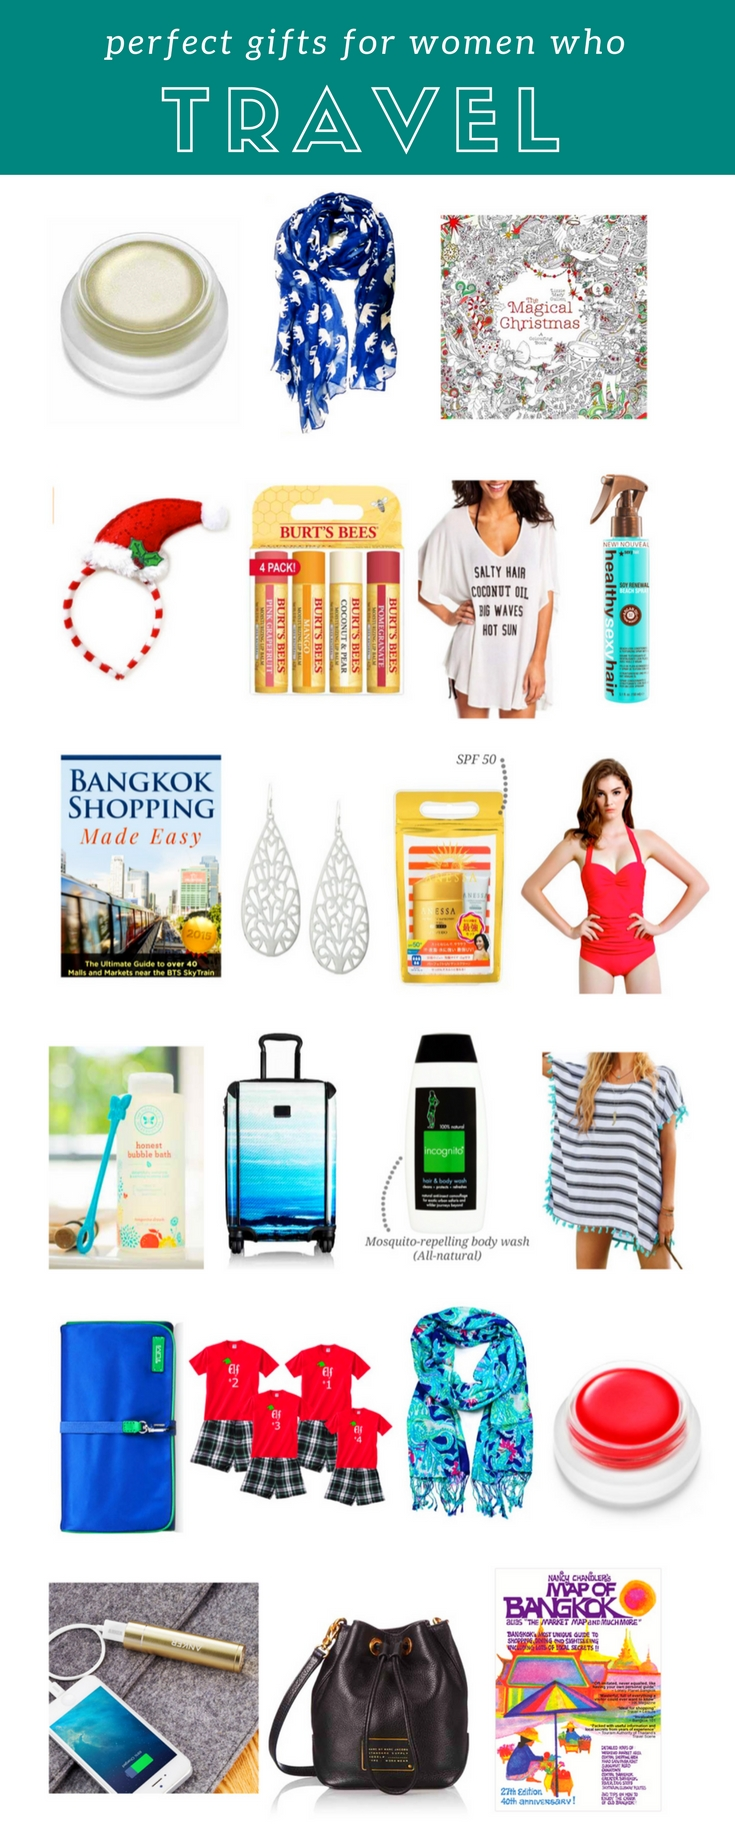 10 Fabulous Travel Gift Ideas For Women travel gift ideas 89 awesome travel gift ideas for women men